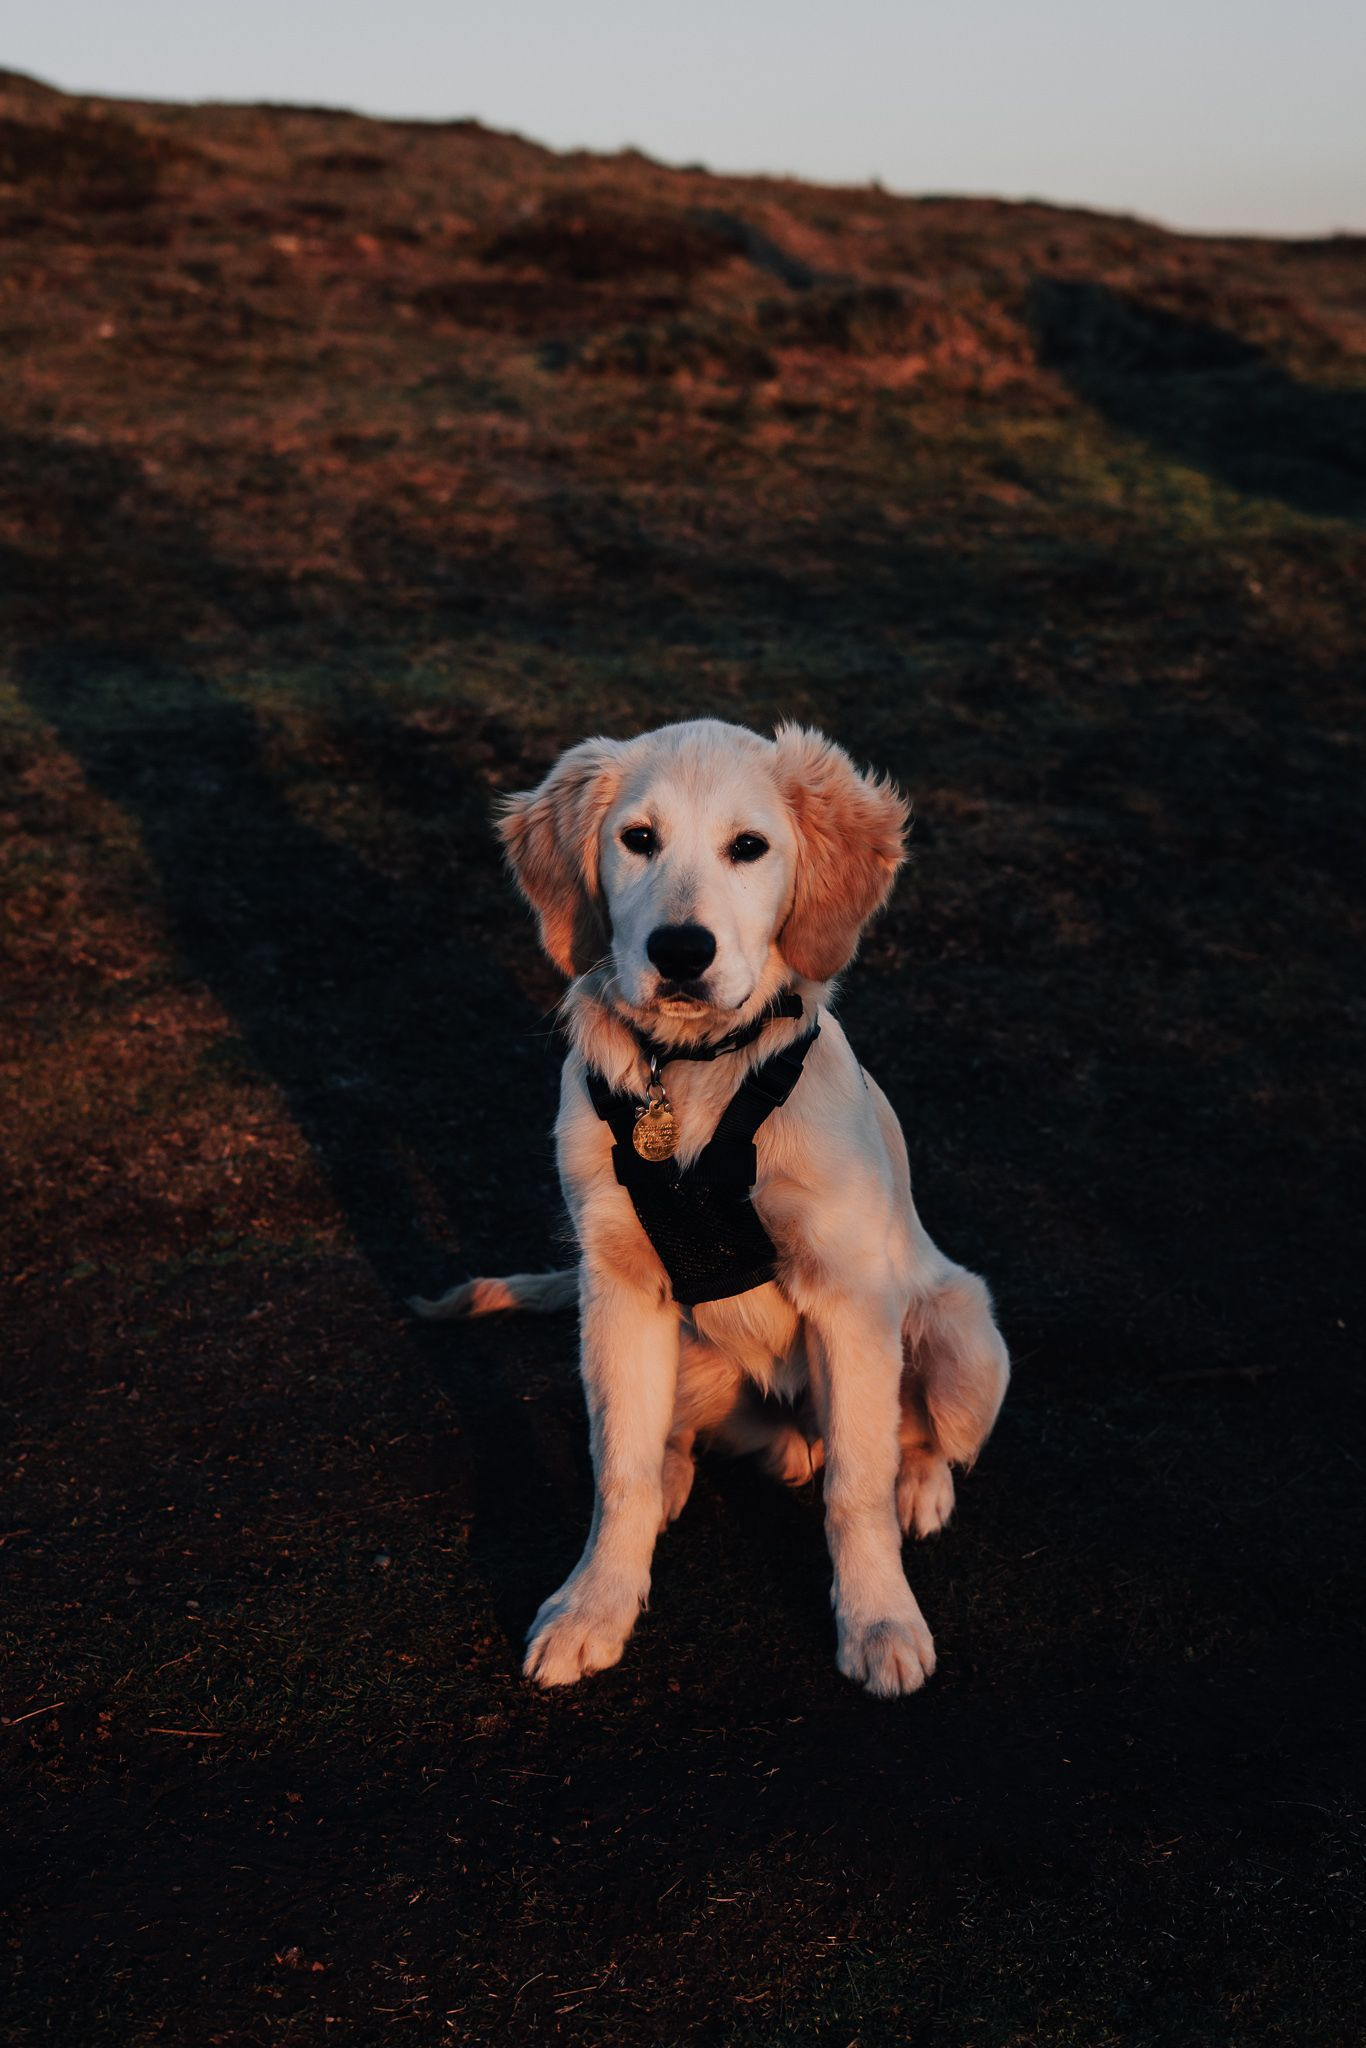 My 5 Month Old Golden Retriever Puppy Oscar Www Transluceo Photography Uk Photographer I Old Golden Retriever Golden Retriever Puppy Golden Retriever